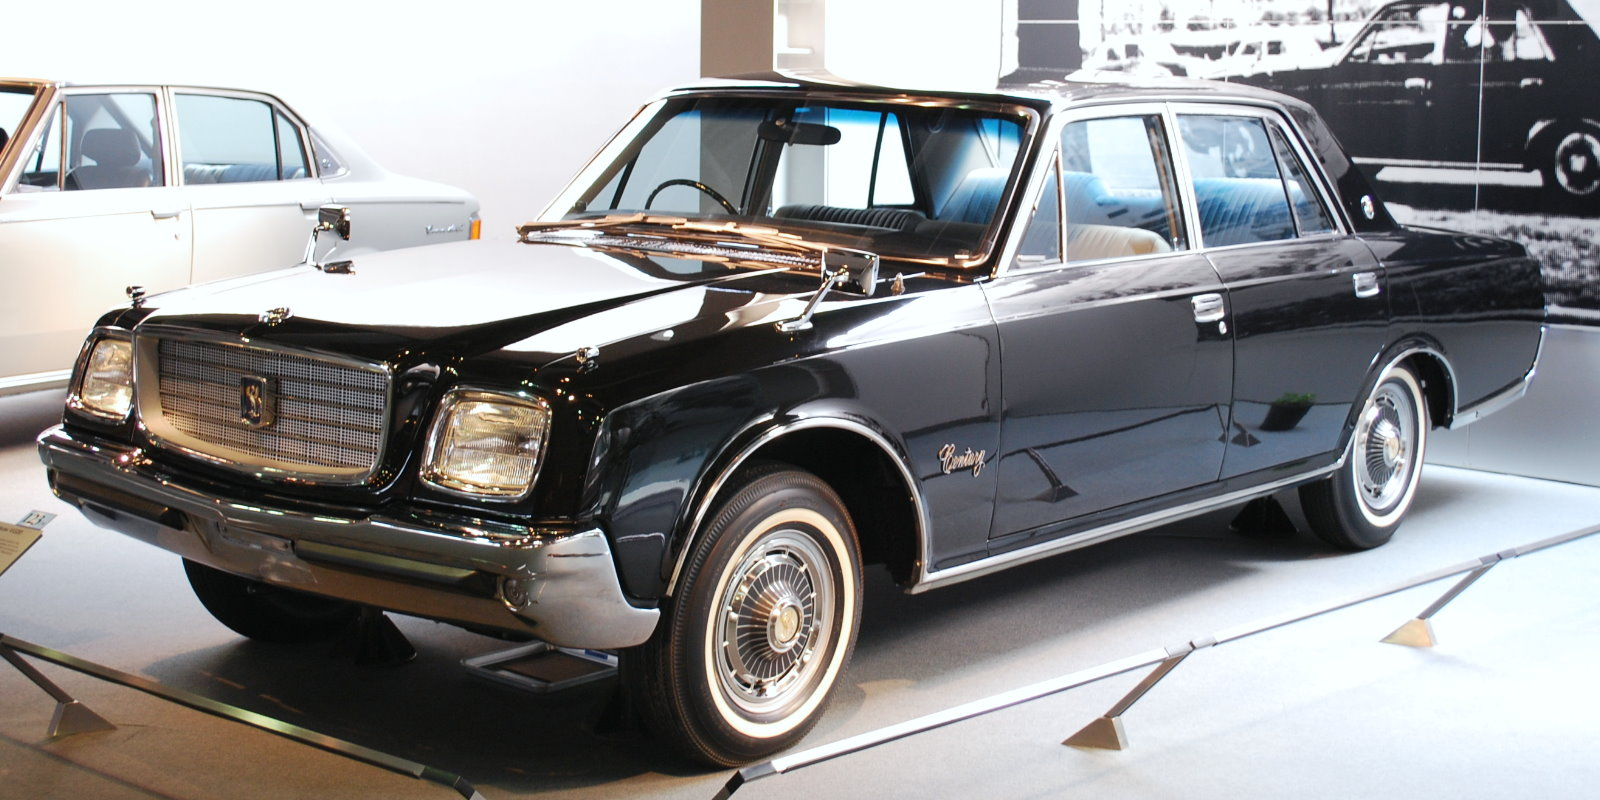 A Step to the New Century With Toyota Century #2